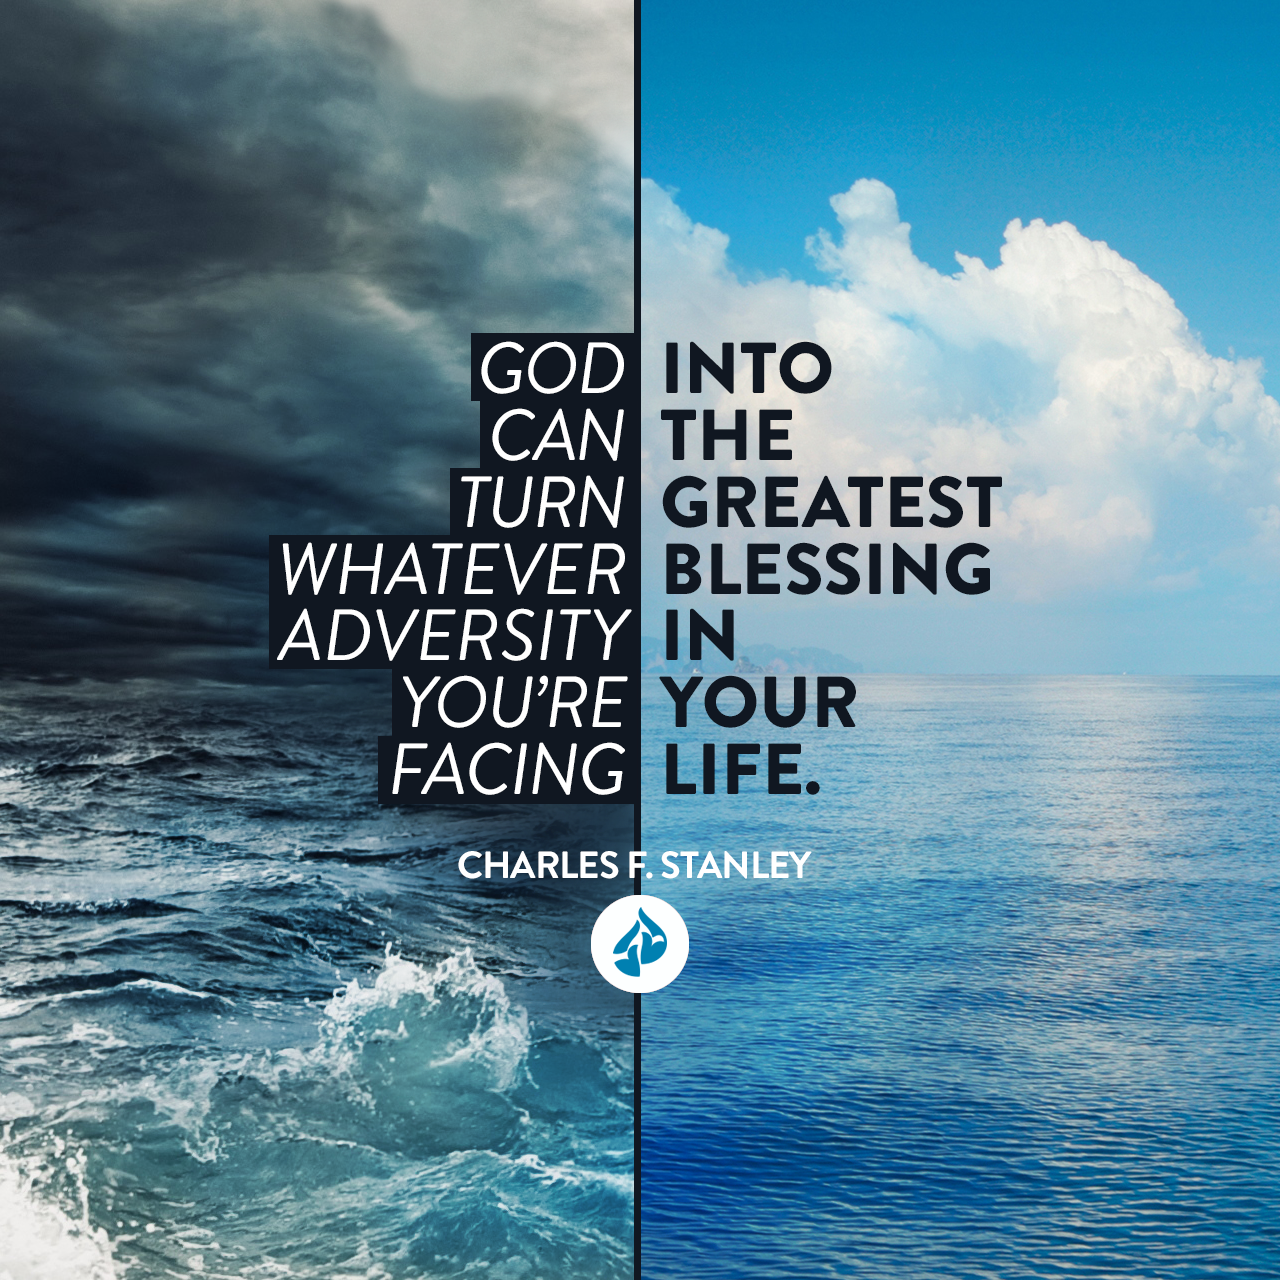 Whatever Adversity You Re Facing In Your Family Among Your Children Financially Or At Your Job Christian Quotes Inspirational Best Bible Quotes Bible Quotes